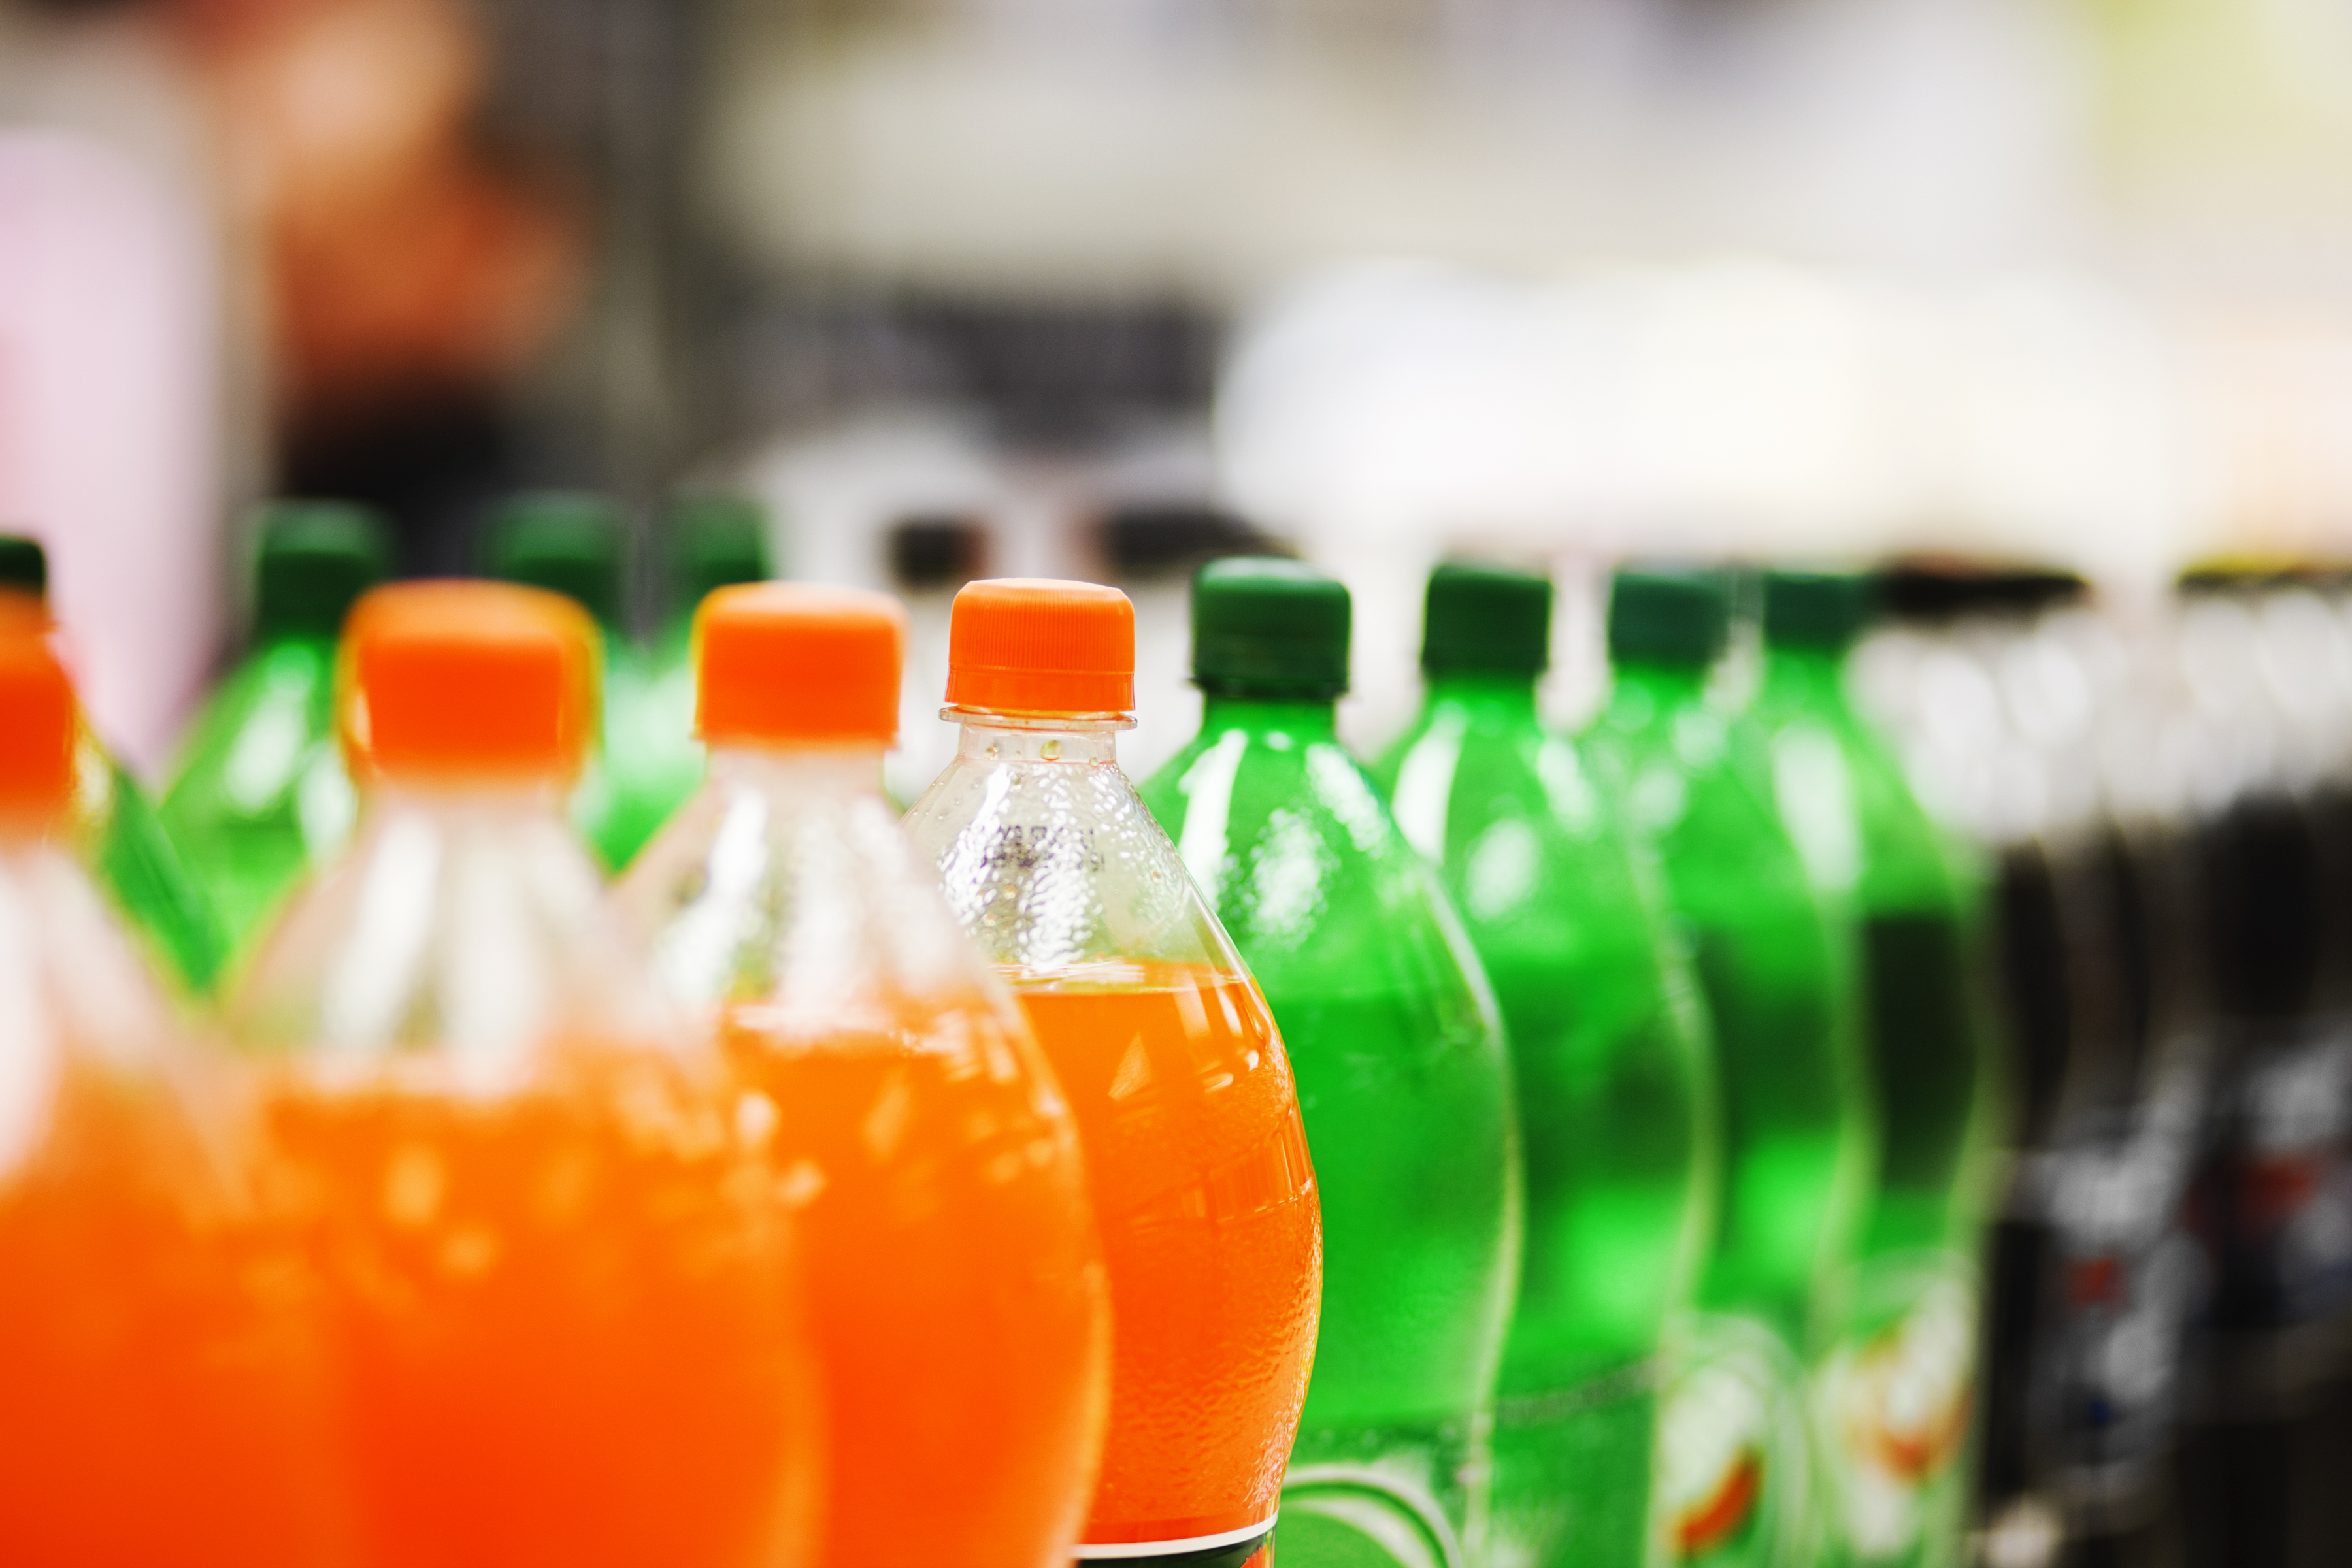 NSW first state in Australia to remove sugary drinks from health facilities